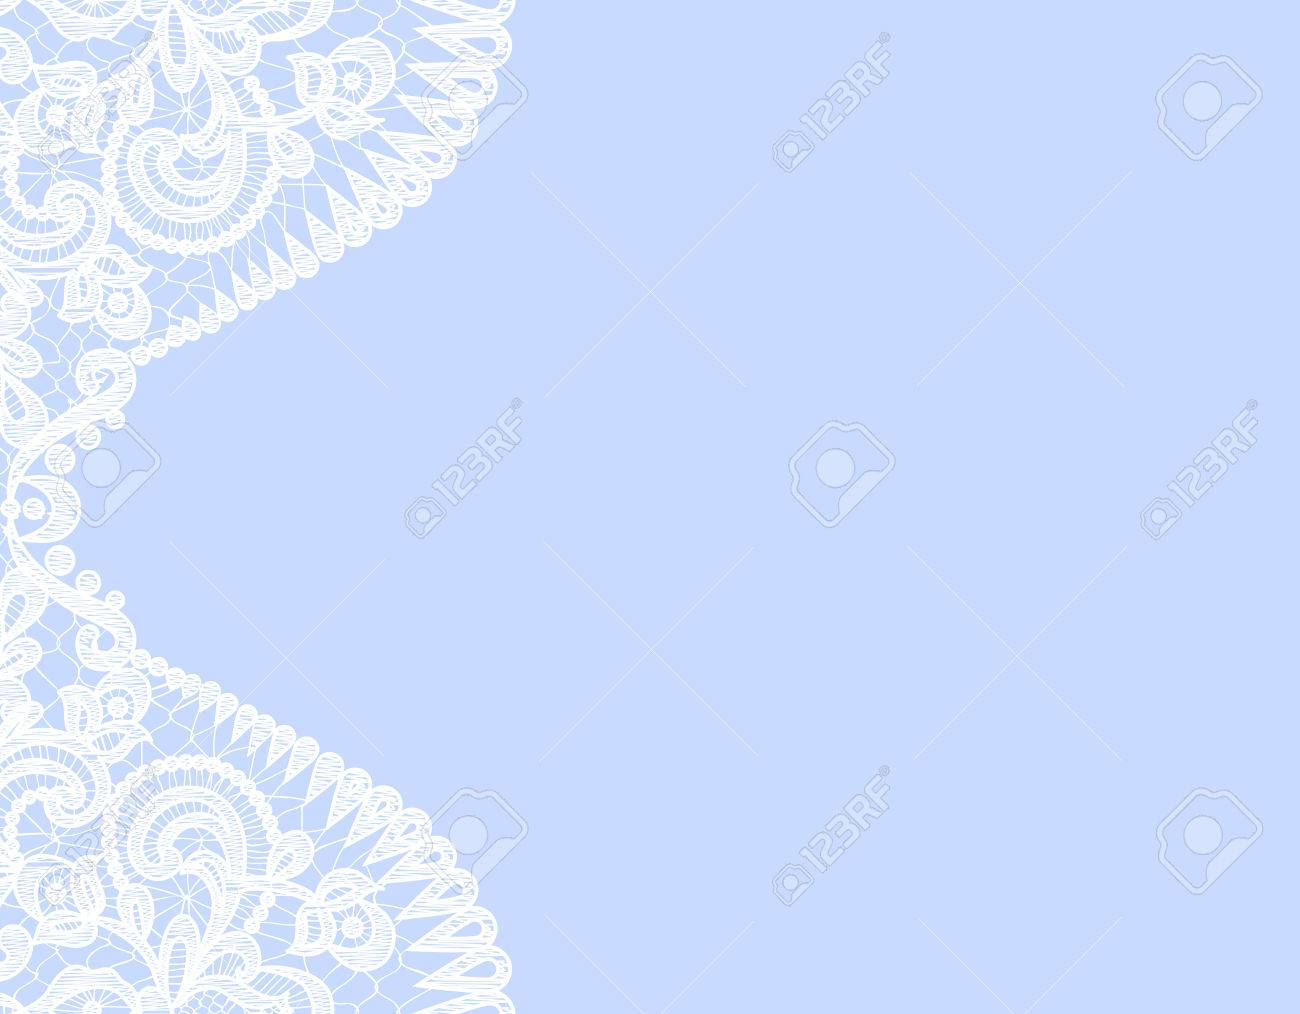 Wedding Invitation Or Greeting Card With Lace Border On Blue